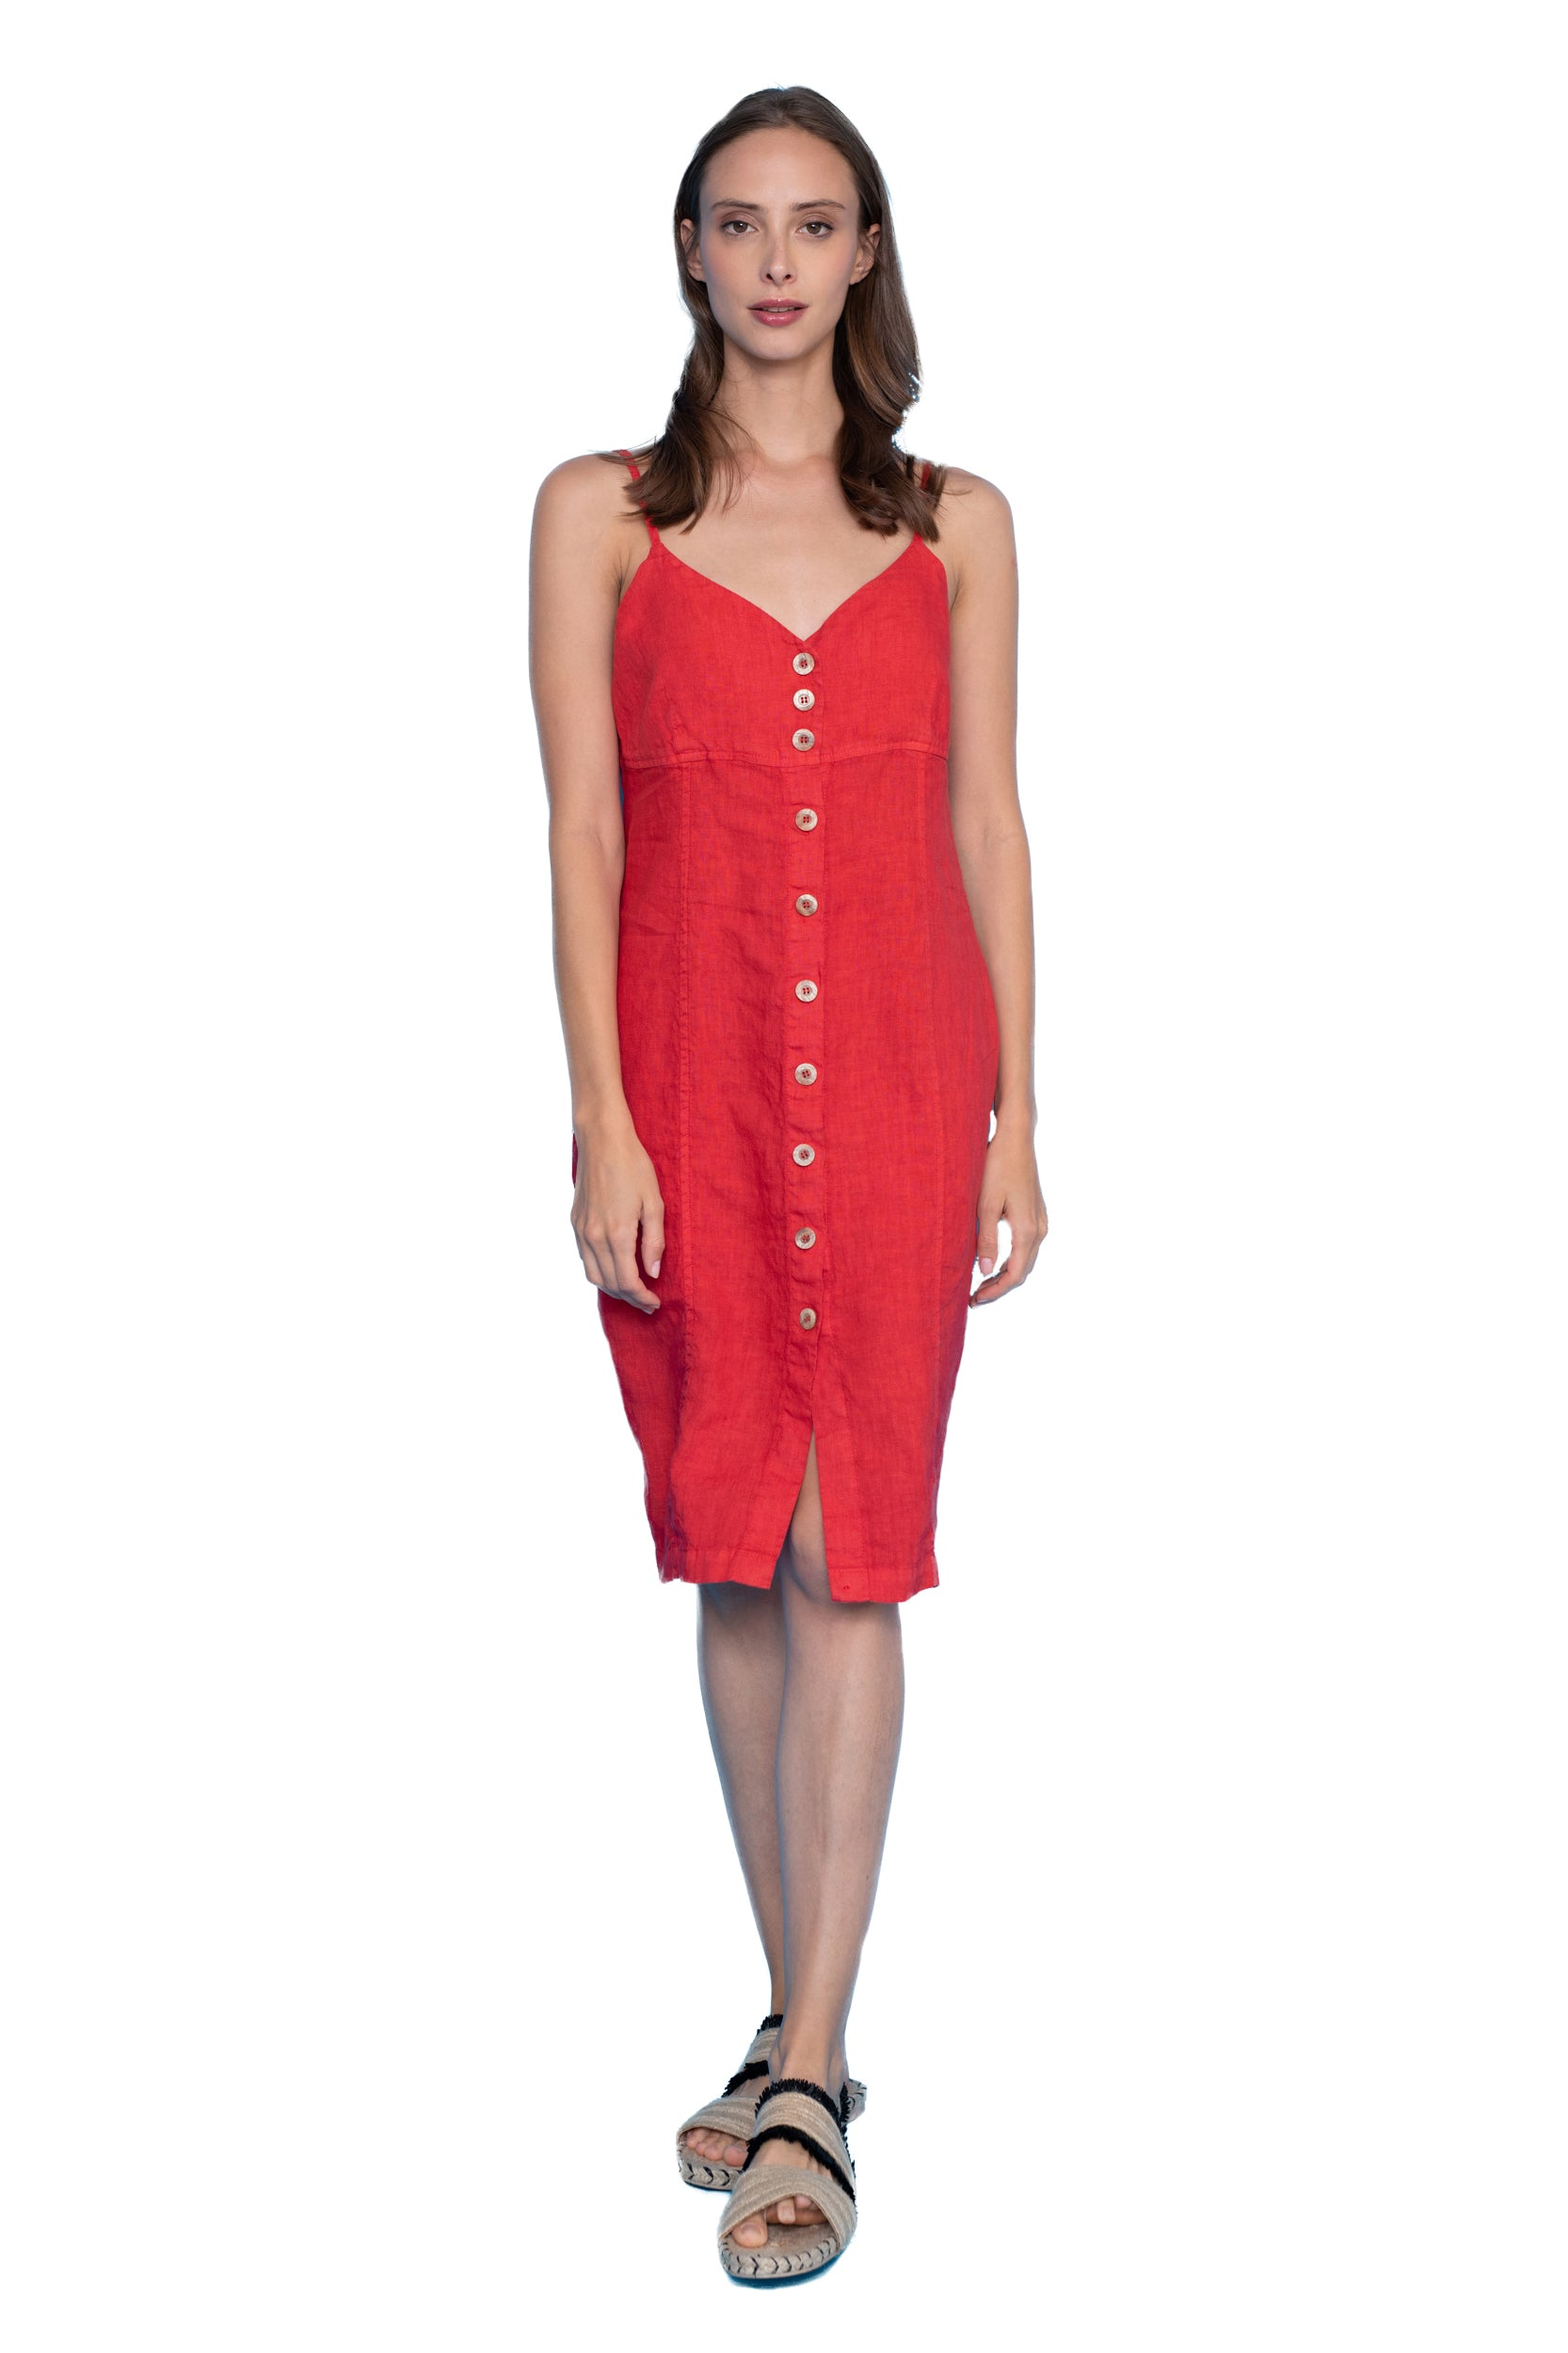 Designer Linen Dress with Straps